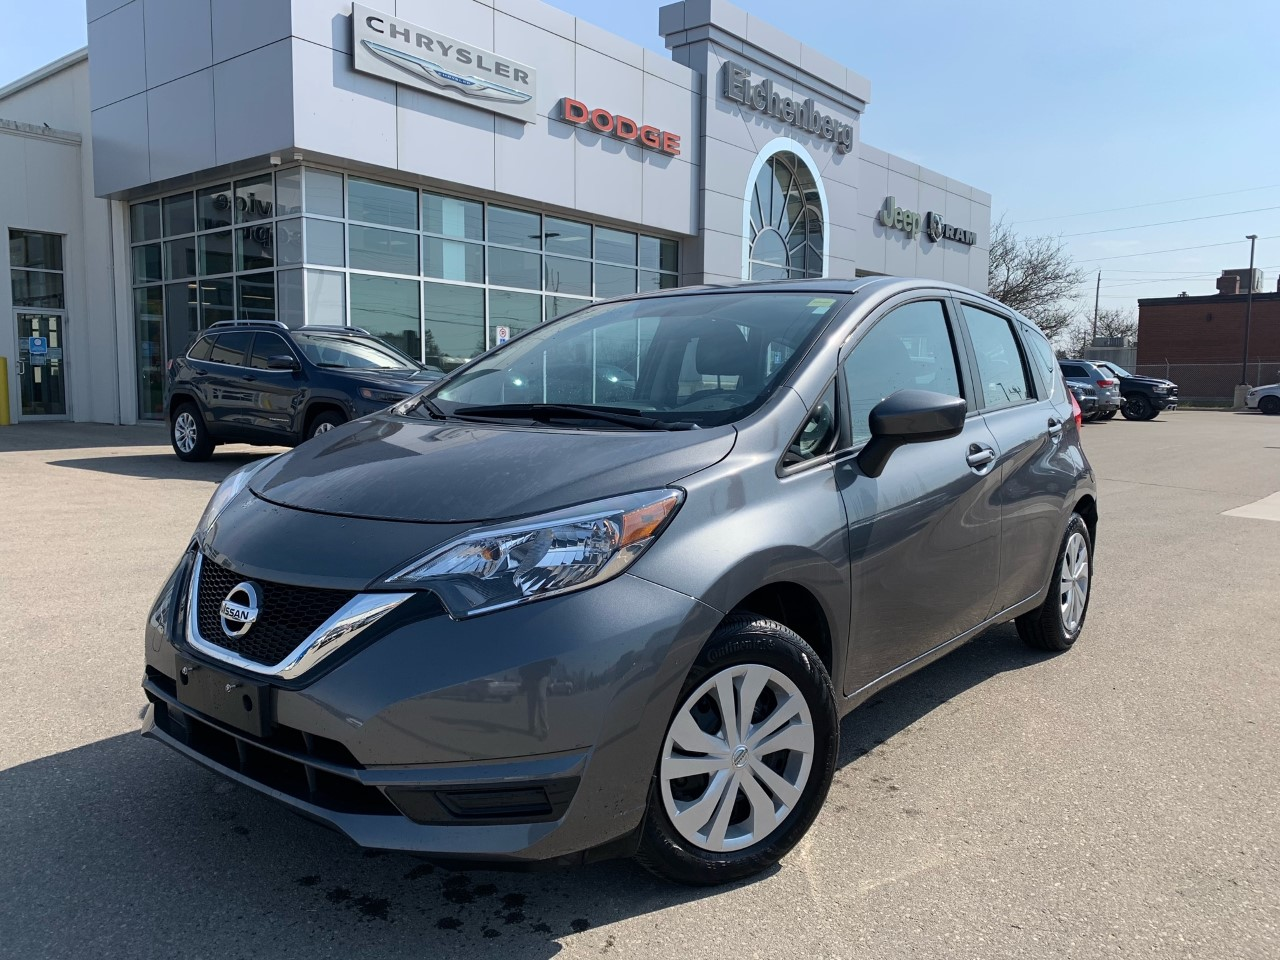 used 2018 Nissan Versa Note car, priced at $12,999